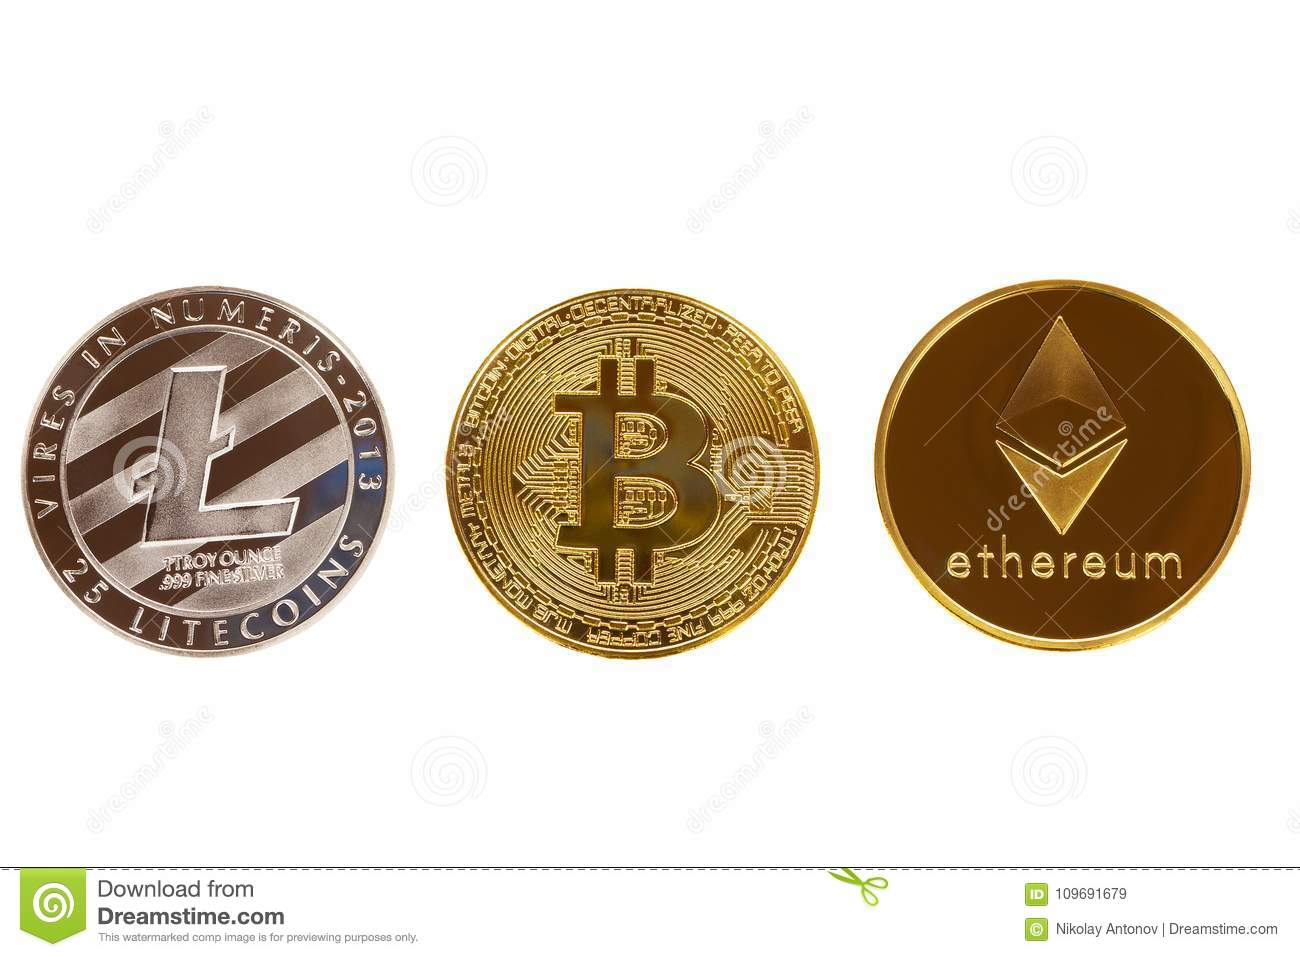 Bitcoin, ethereum and litecoin coins isolated on white background. Crypto currency - electronic virtual money for web banking and